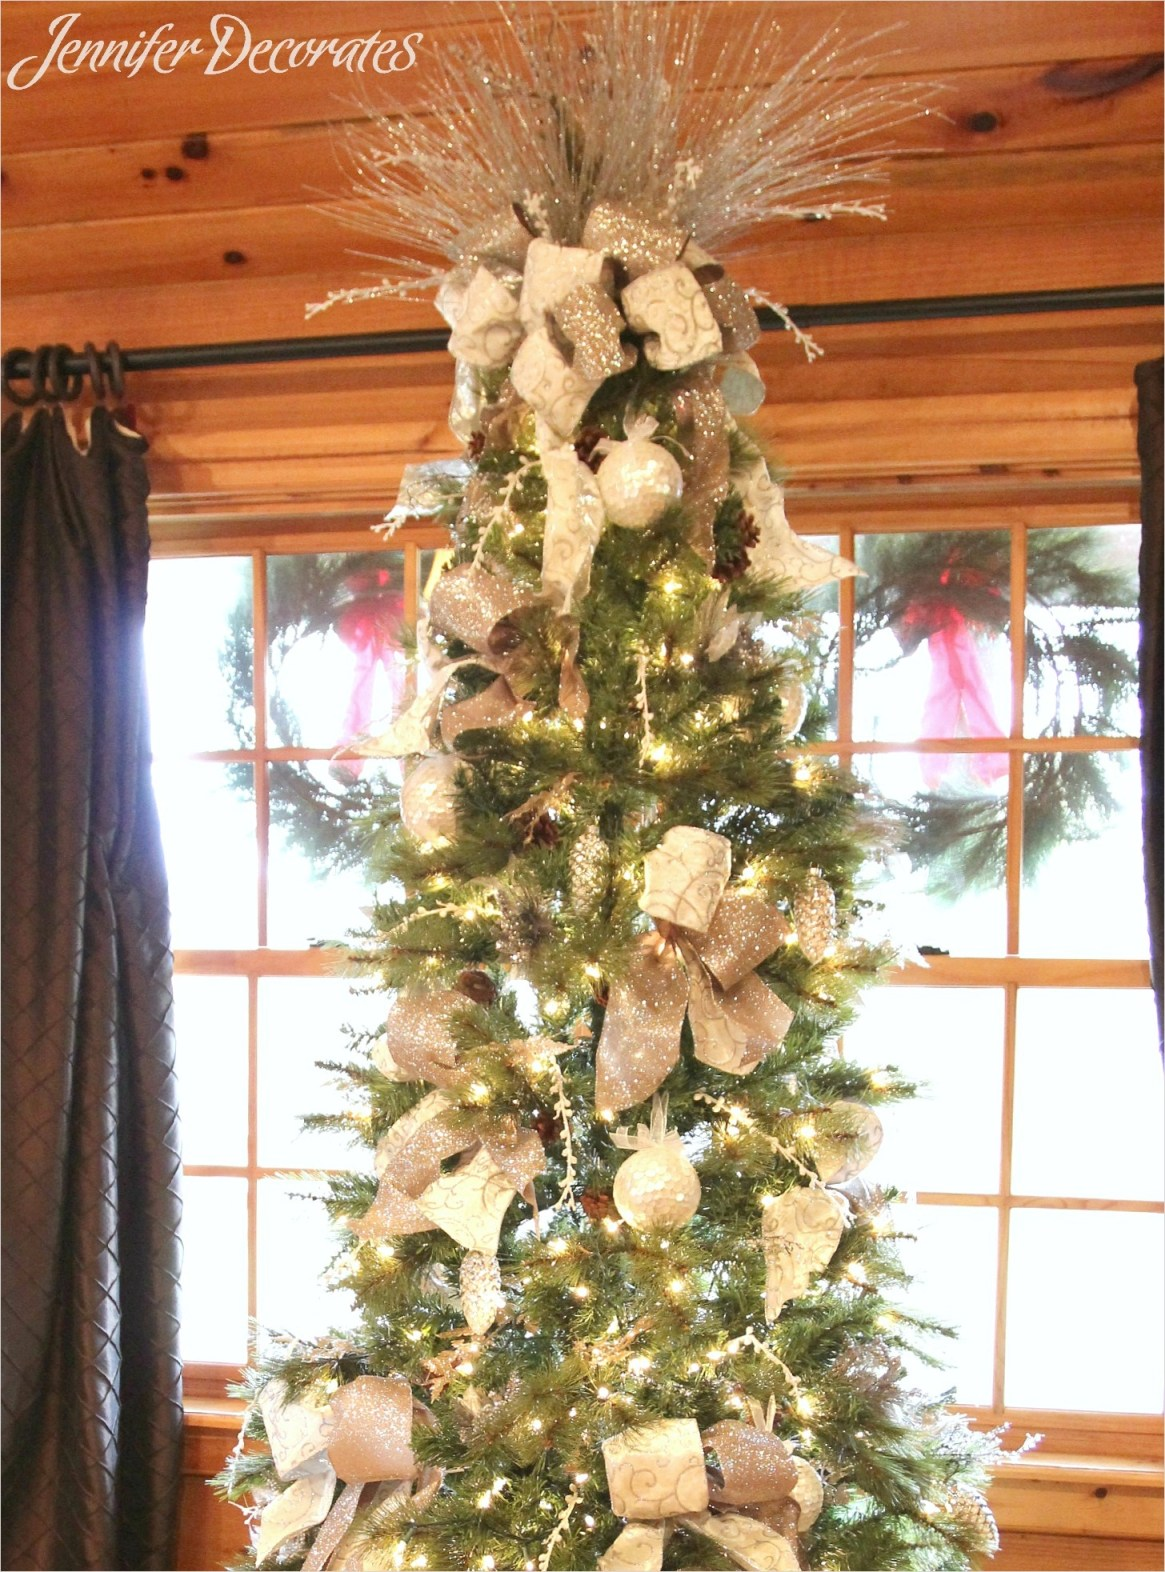 42 Stunning Country Christmas Centerpieces Ideas Ideas 87 Country Christmas Decorating Ideas Jennifer Decorates 6